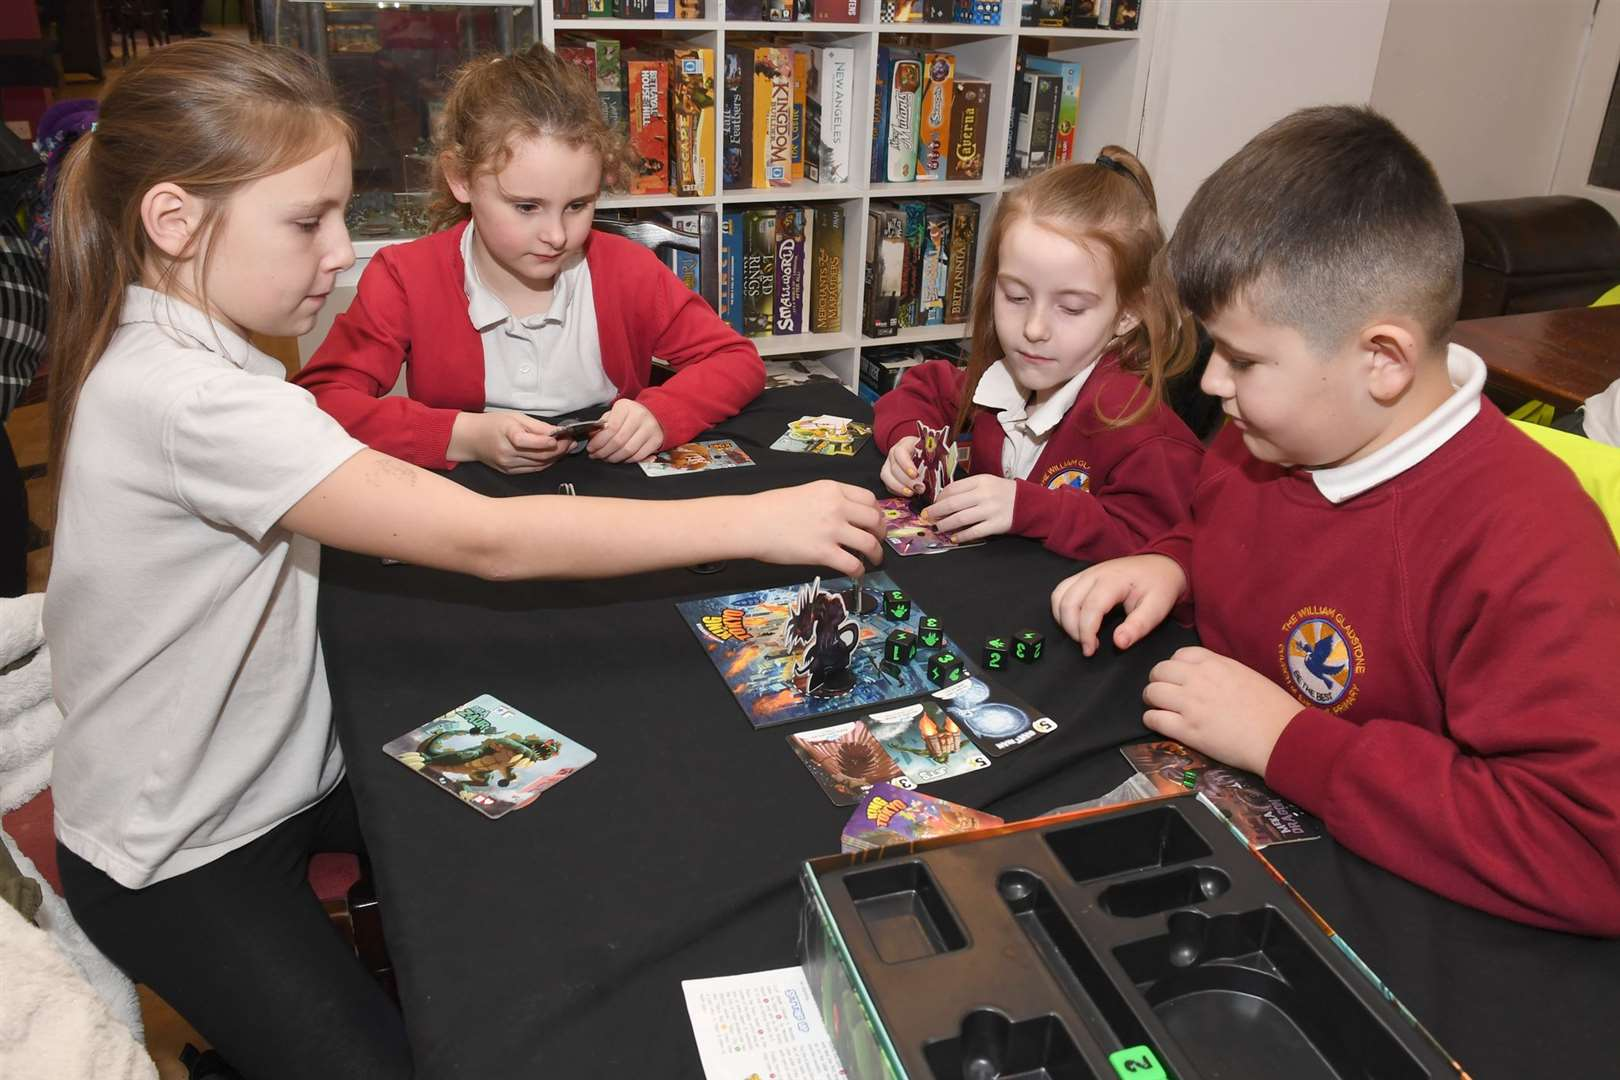 William Gladstone pupils at Xcape board game cafe..L-R Brodie White 10, Lacie Sharp 7, Lacey Summerfield 6, Coby Rolfe 9. 111219DD9-4. (24081009)